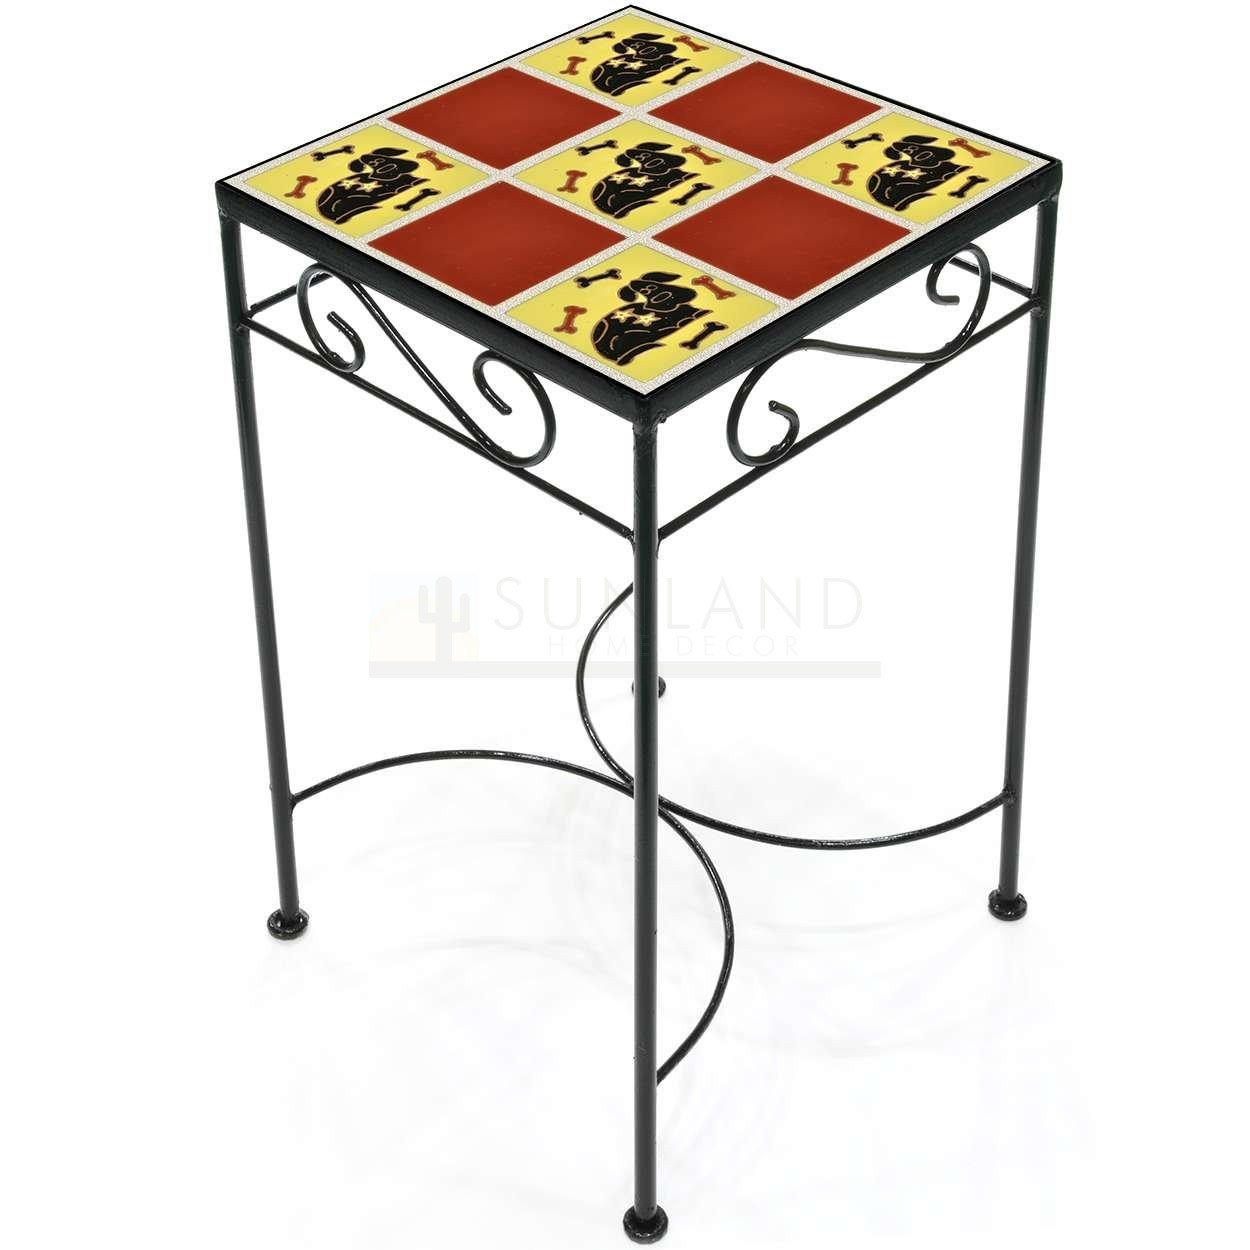 tile accent table dog and bones red metal square tall glass bistro side patio folding dining victorian couch target marble mid century set wooden plant stand home goods wall art